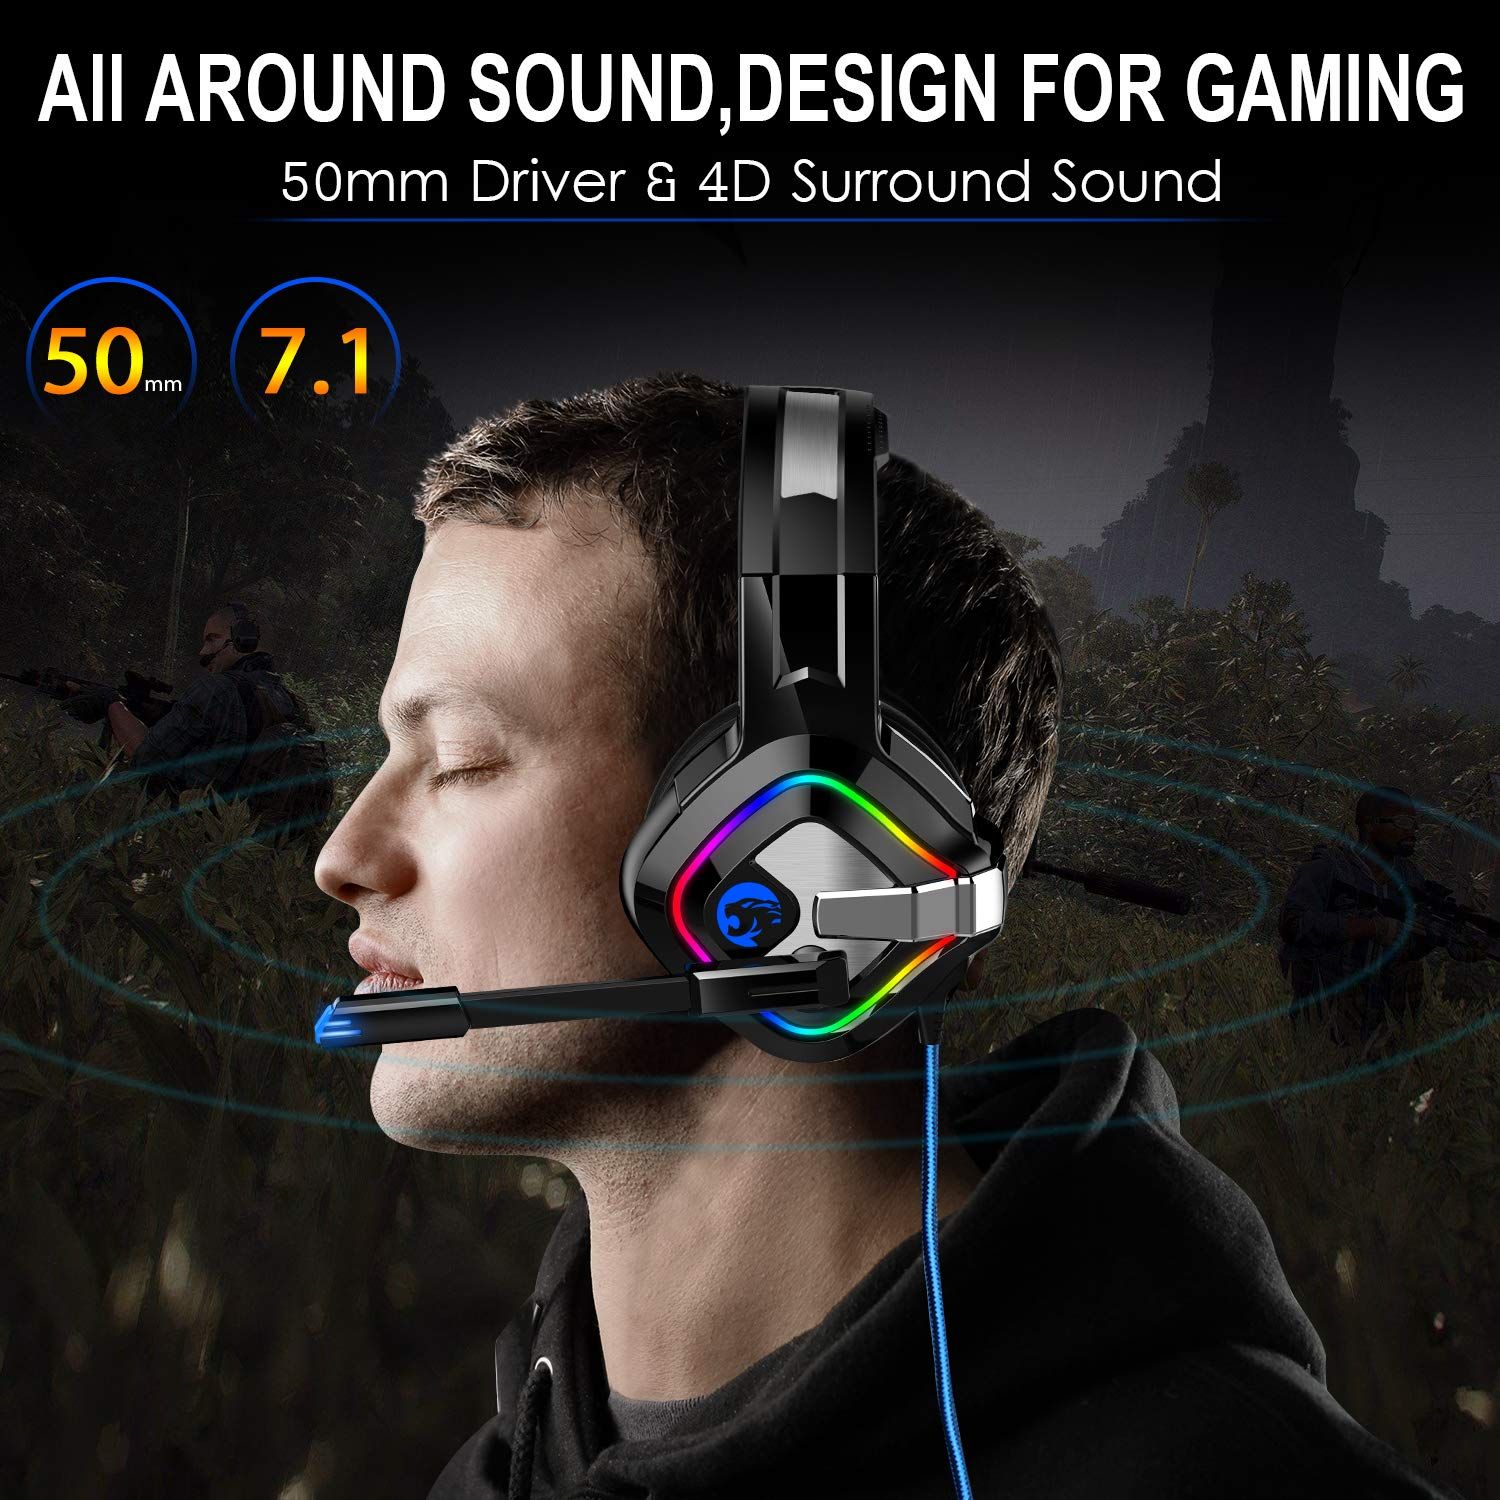 ZIUMIER Gaming Headset PS4 Headset, Xbox One Headset with Noise Canceling  Mic & RGB Light, PC Headset with Stereo Surround Sound, Over Ear Headphones